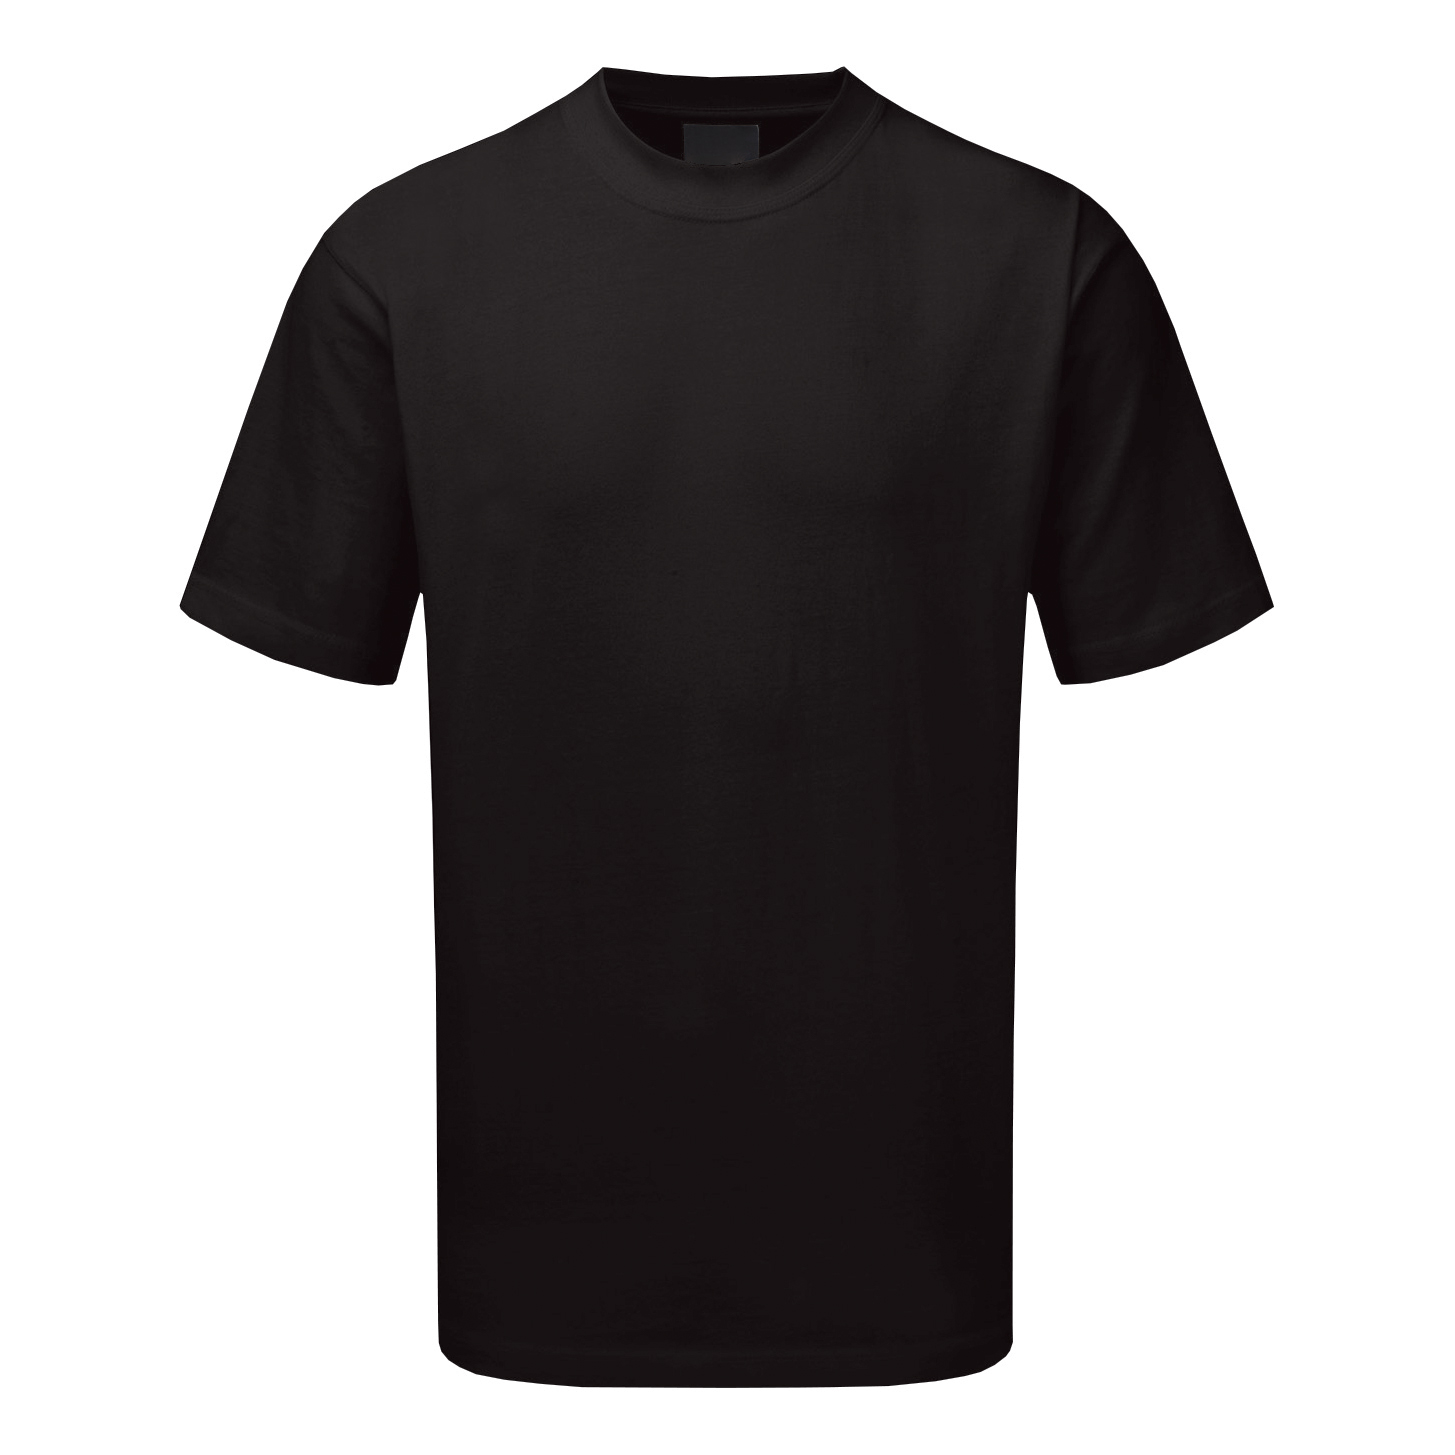 Premium T-Shirt Polycotton Triple Stitched XL Black